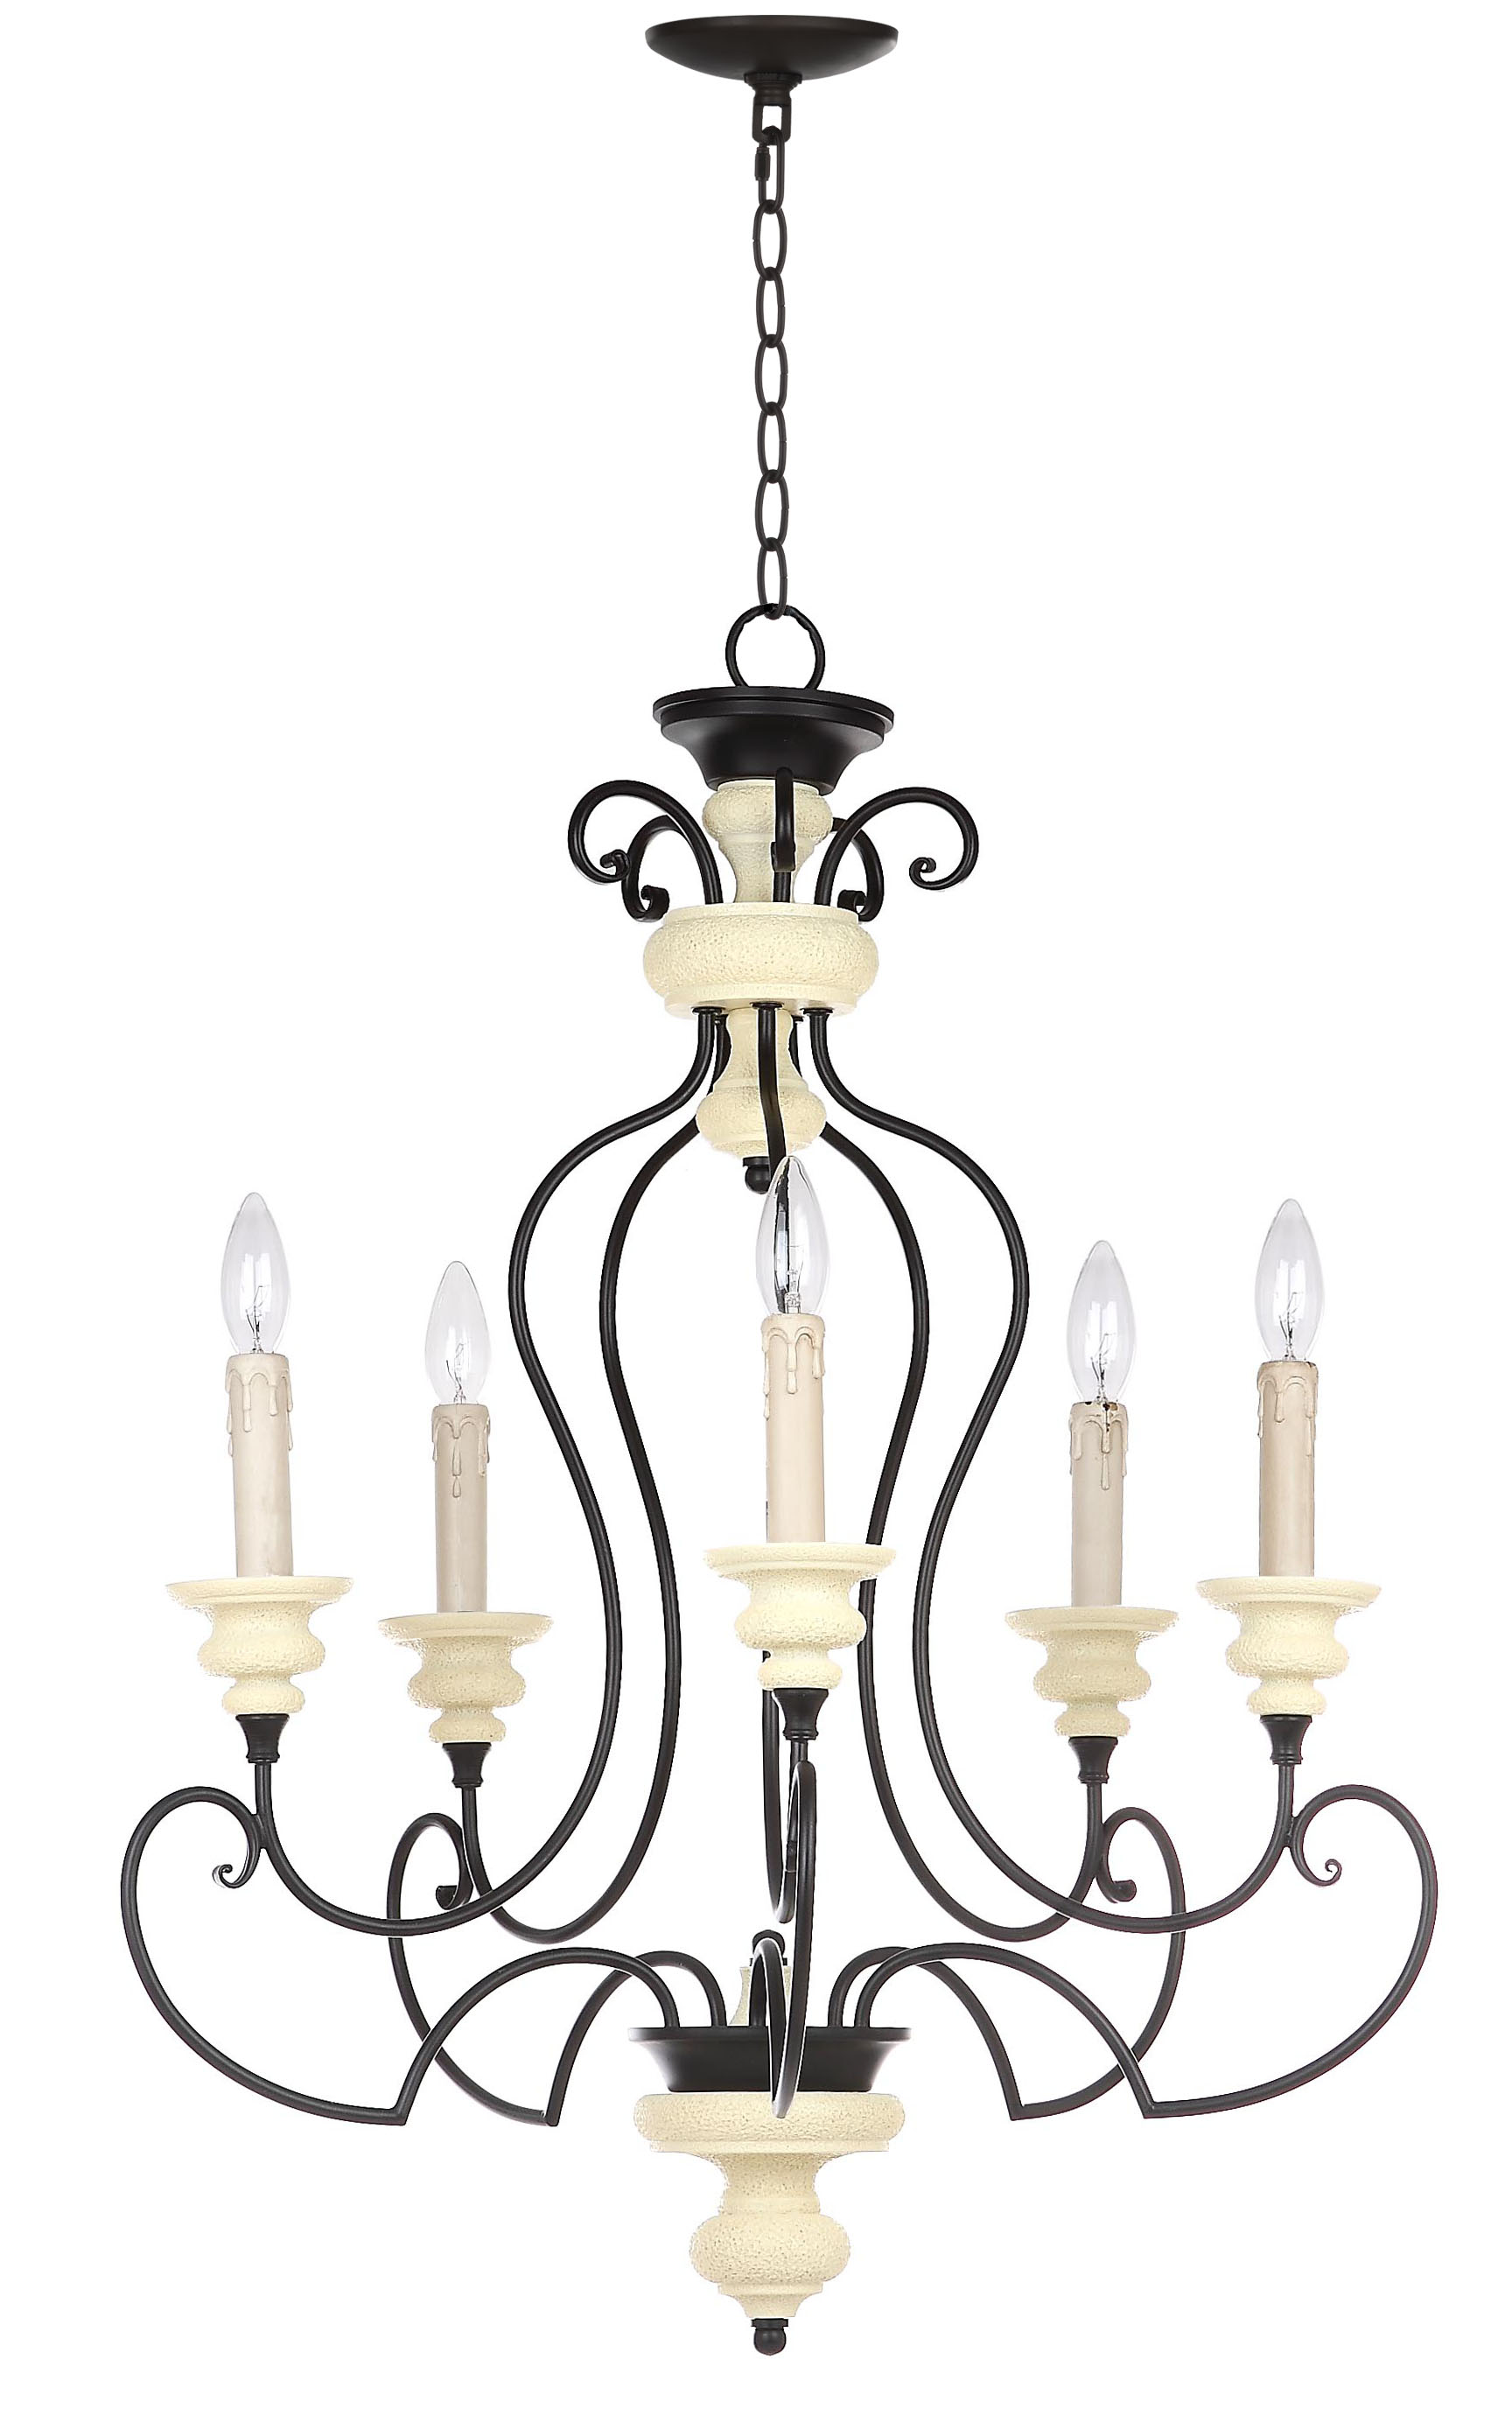 Safavieh Hanna 24 In Dia Adjustable Chandelier Black